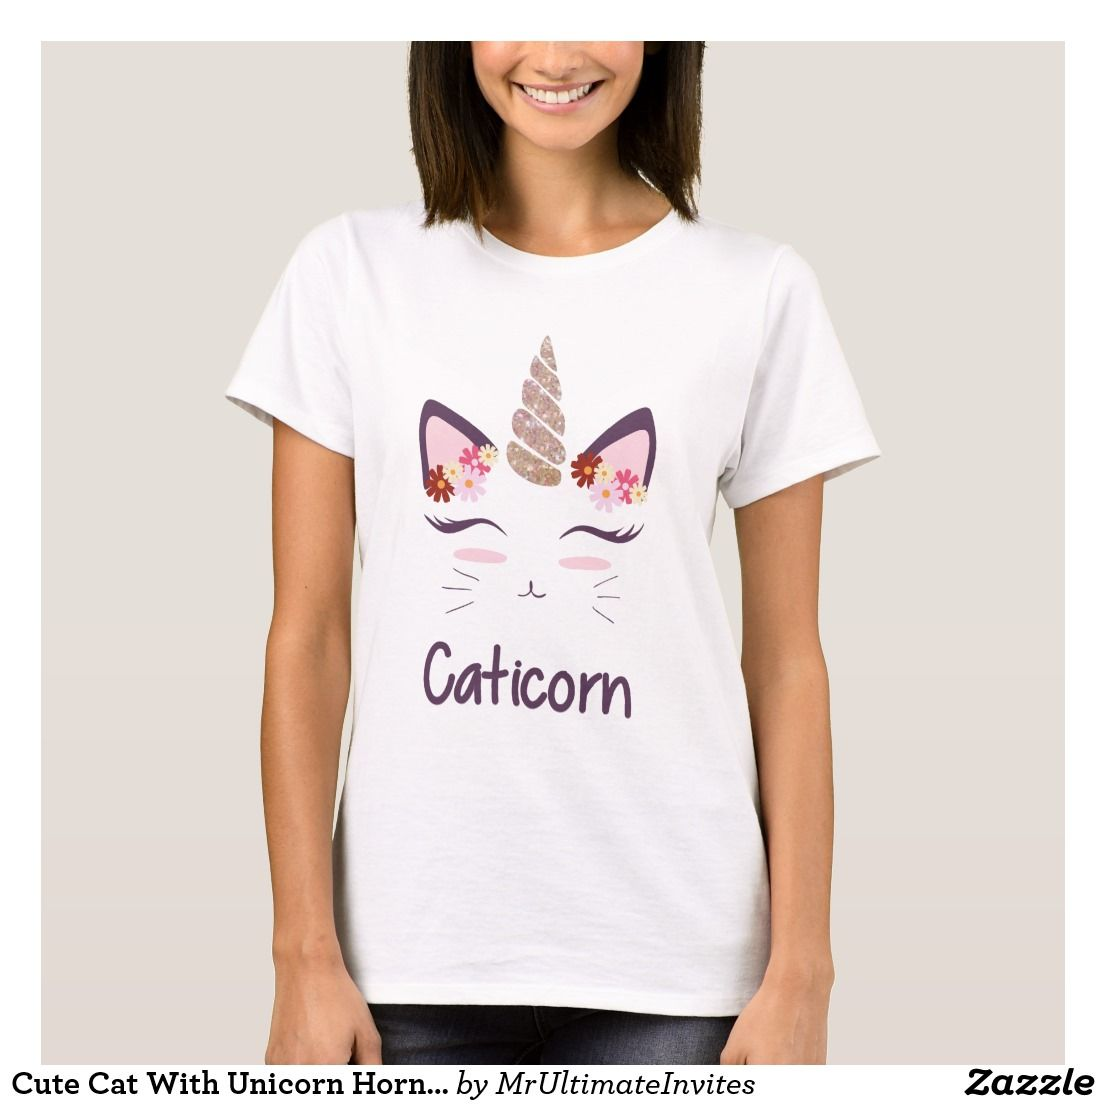 Cute Cat With Unicorn Horn And Flowers T-shirt | Zazzle.com